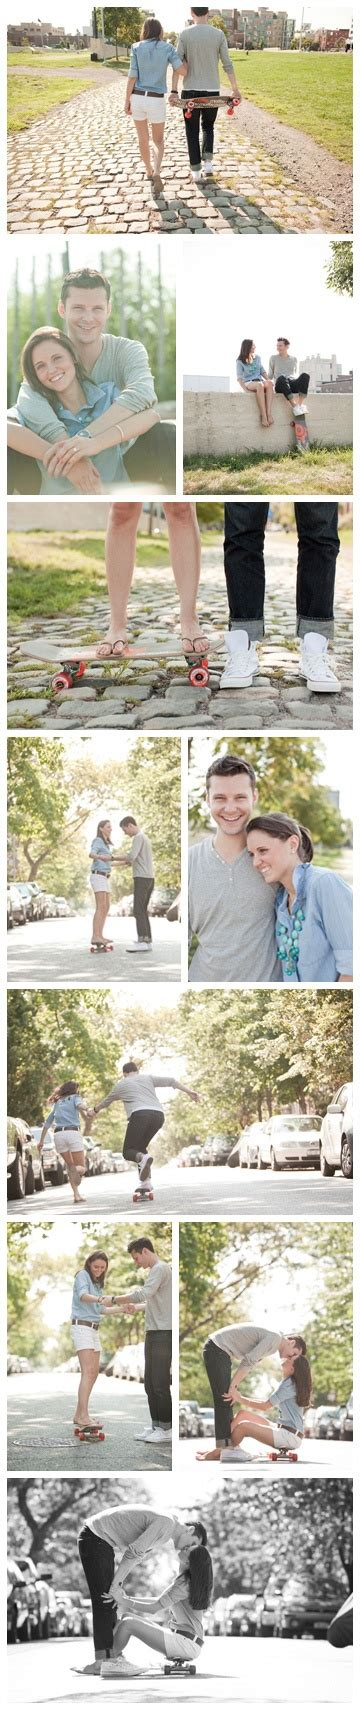 brooklyn wedding by moss isaac graham elizabeth the best 25 engagement shoots ideas only on pinterest